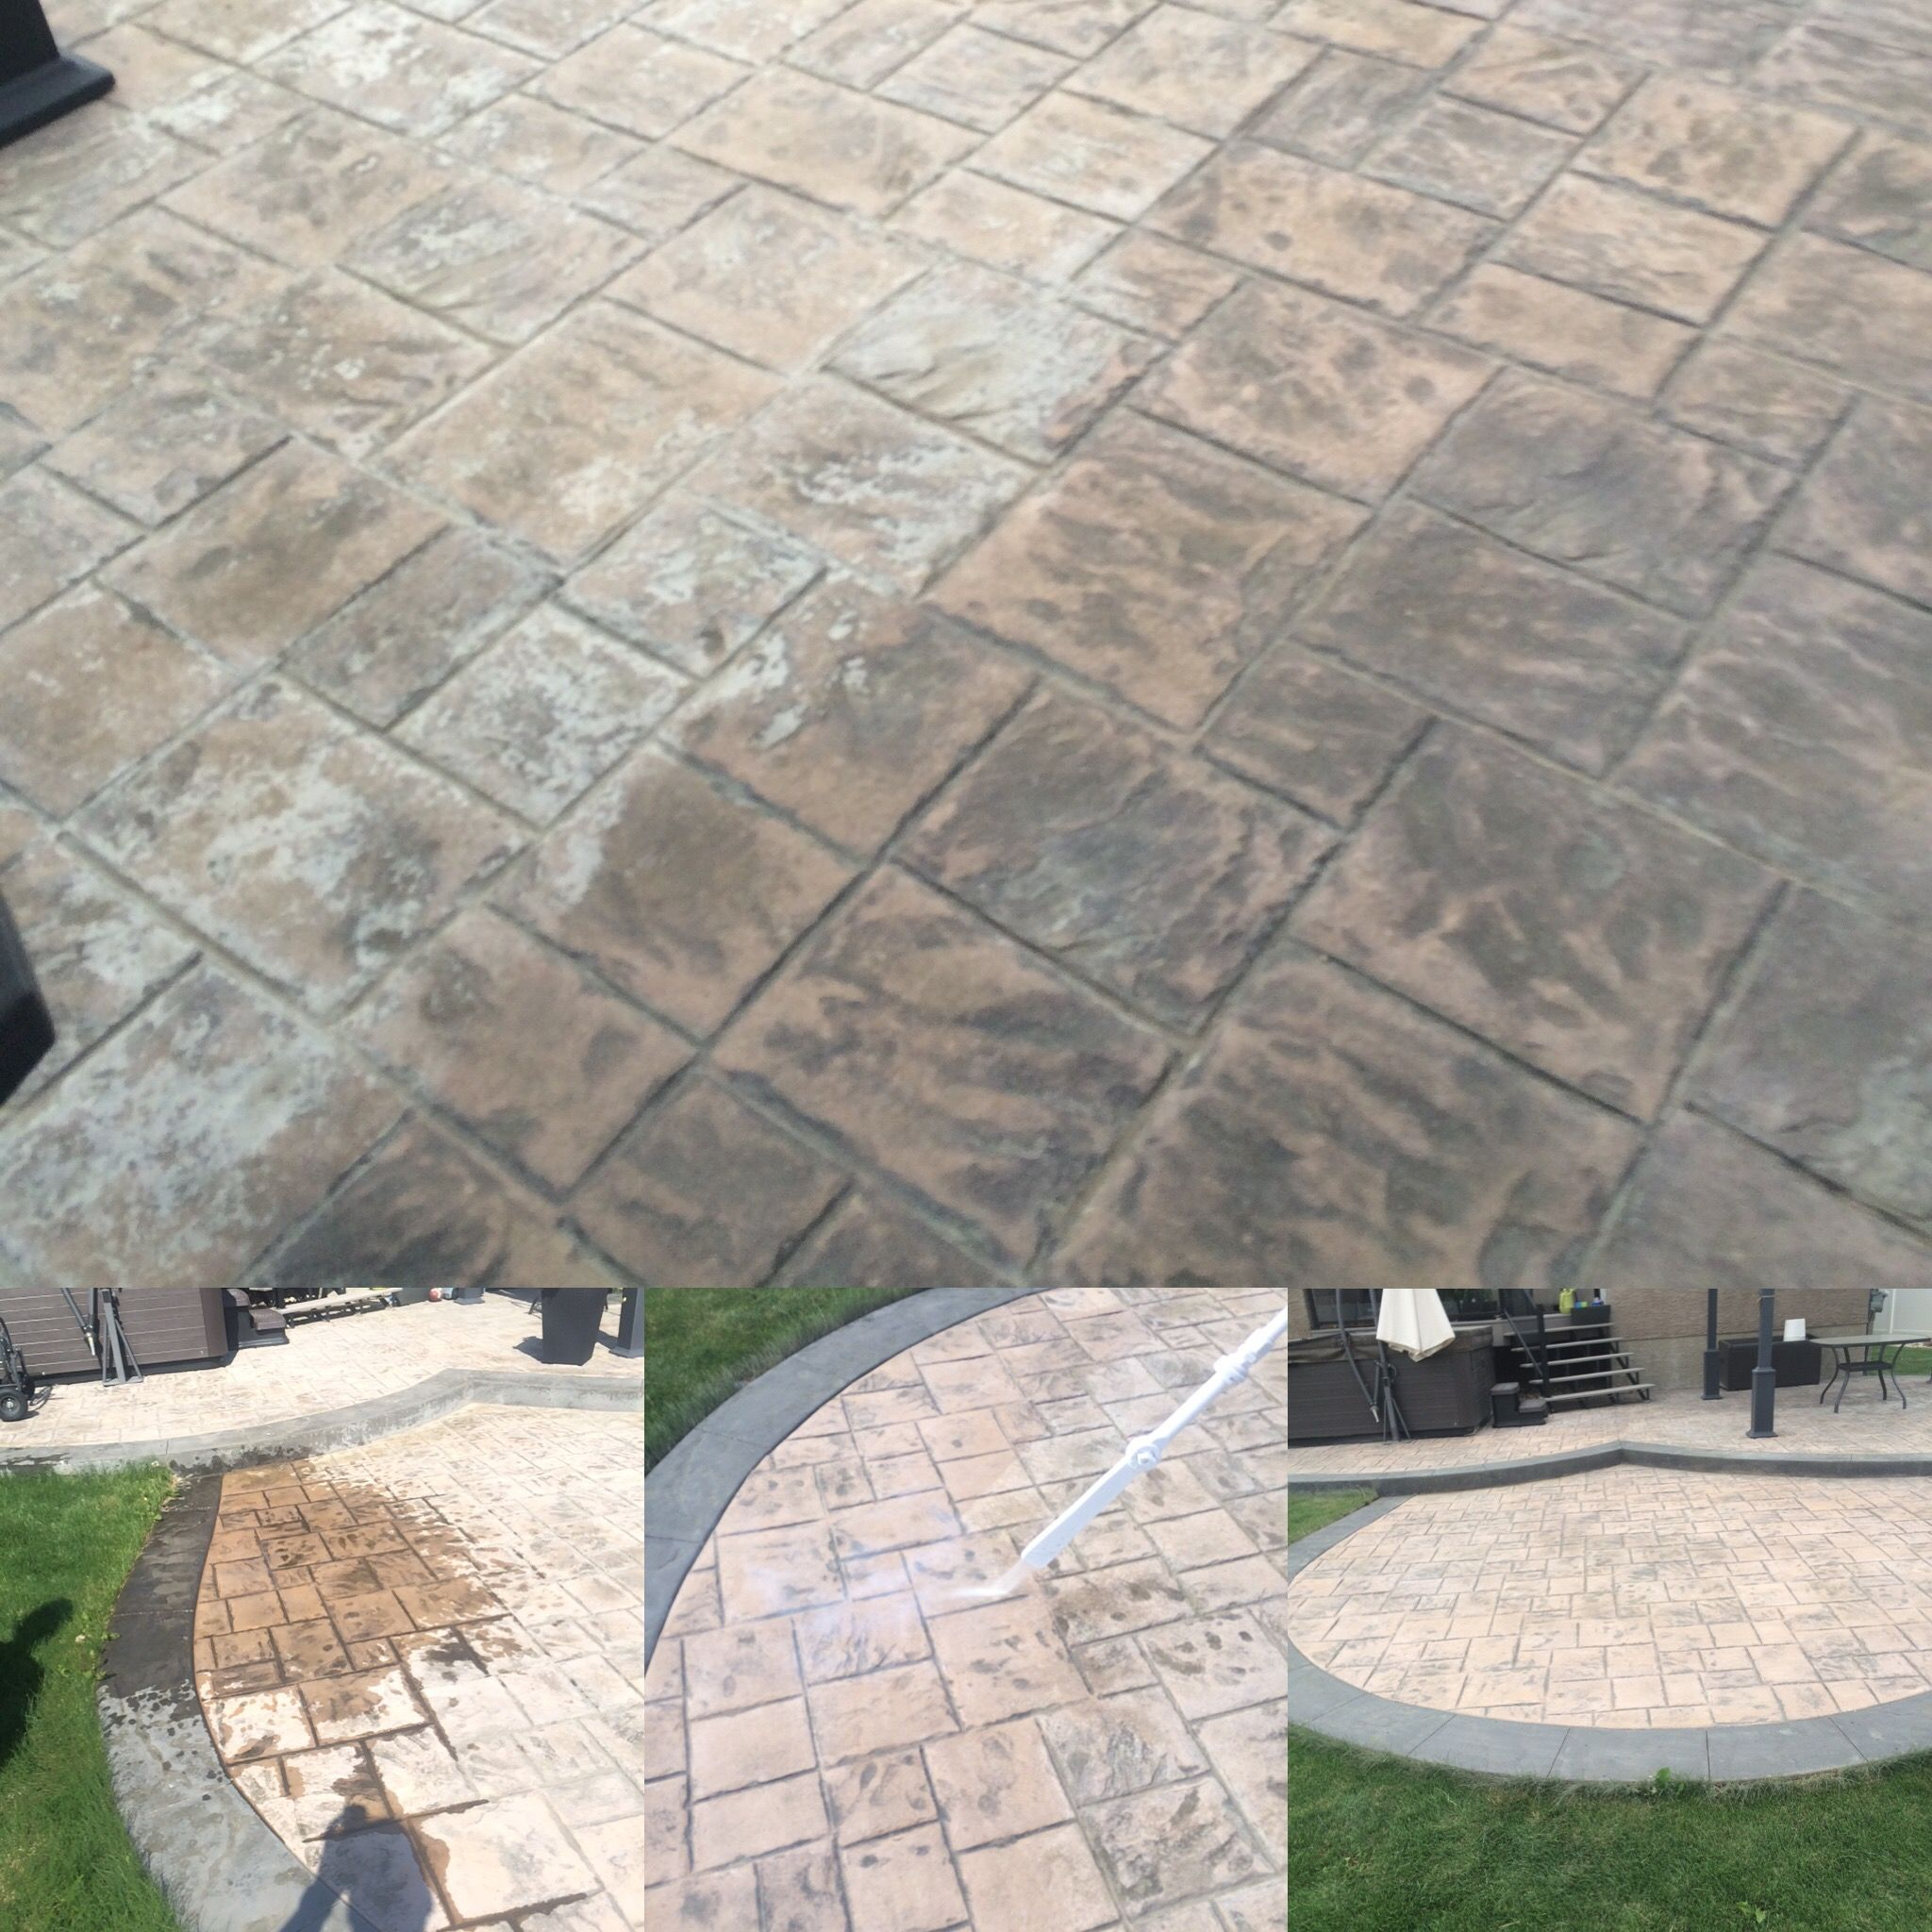 Using Dry Ice Blasting To Remove Concrete Sealer From A Stamped Concrete  Patio. Dry Ice